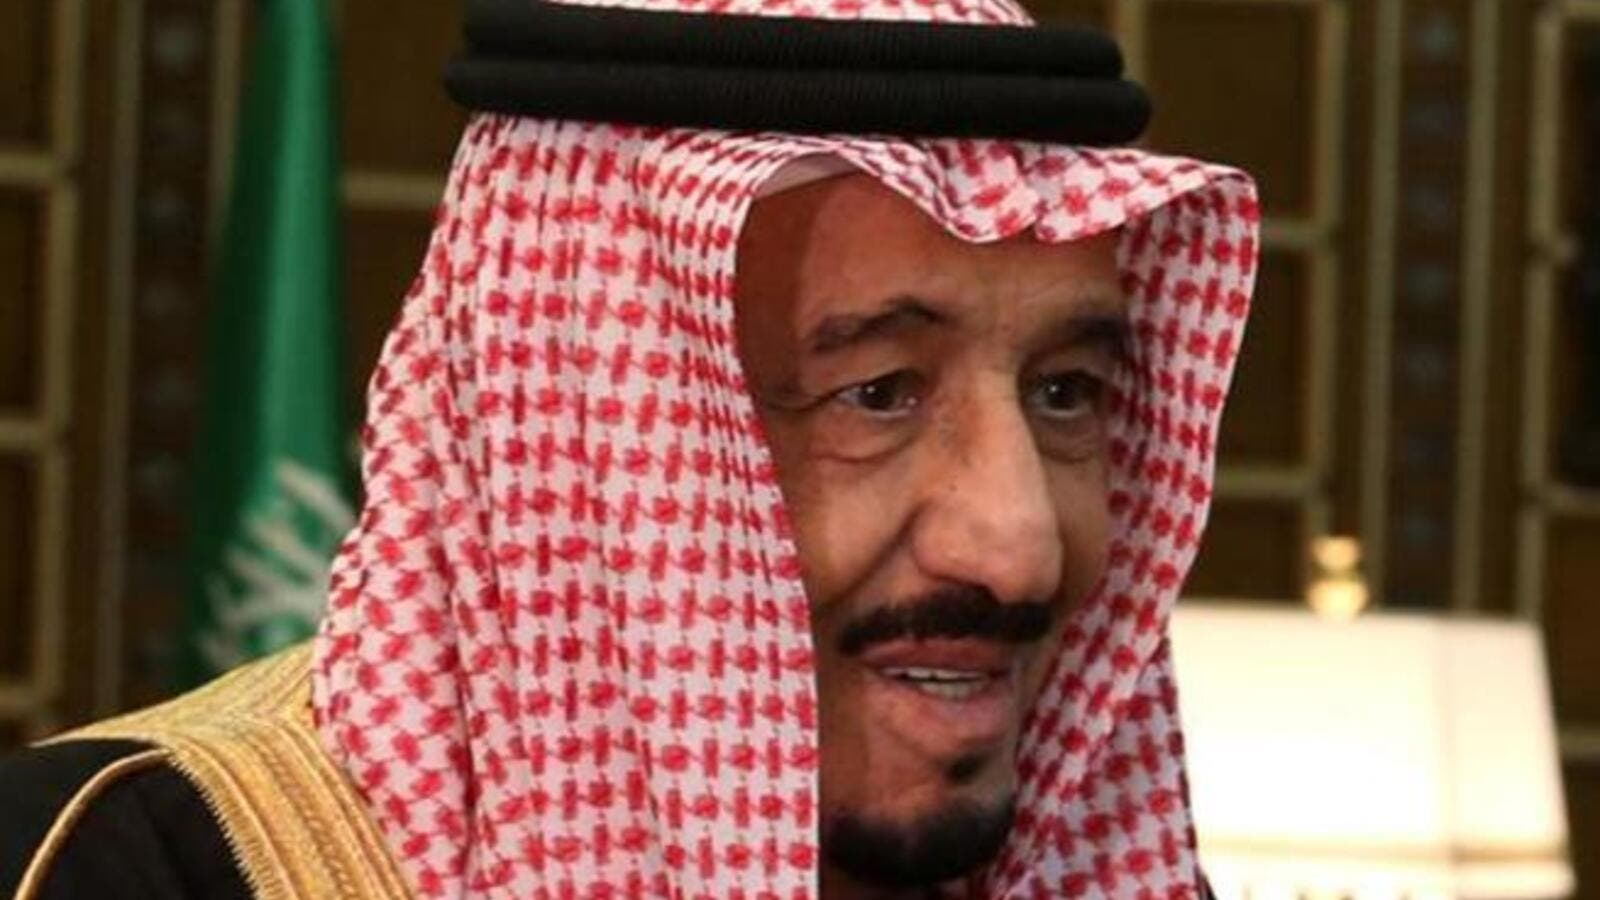 The exact mechanics of Saudi decision-making have always been obscure, but there is a broad understanding that the king has the final say in a process